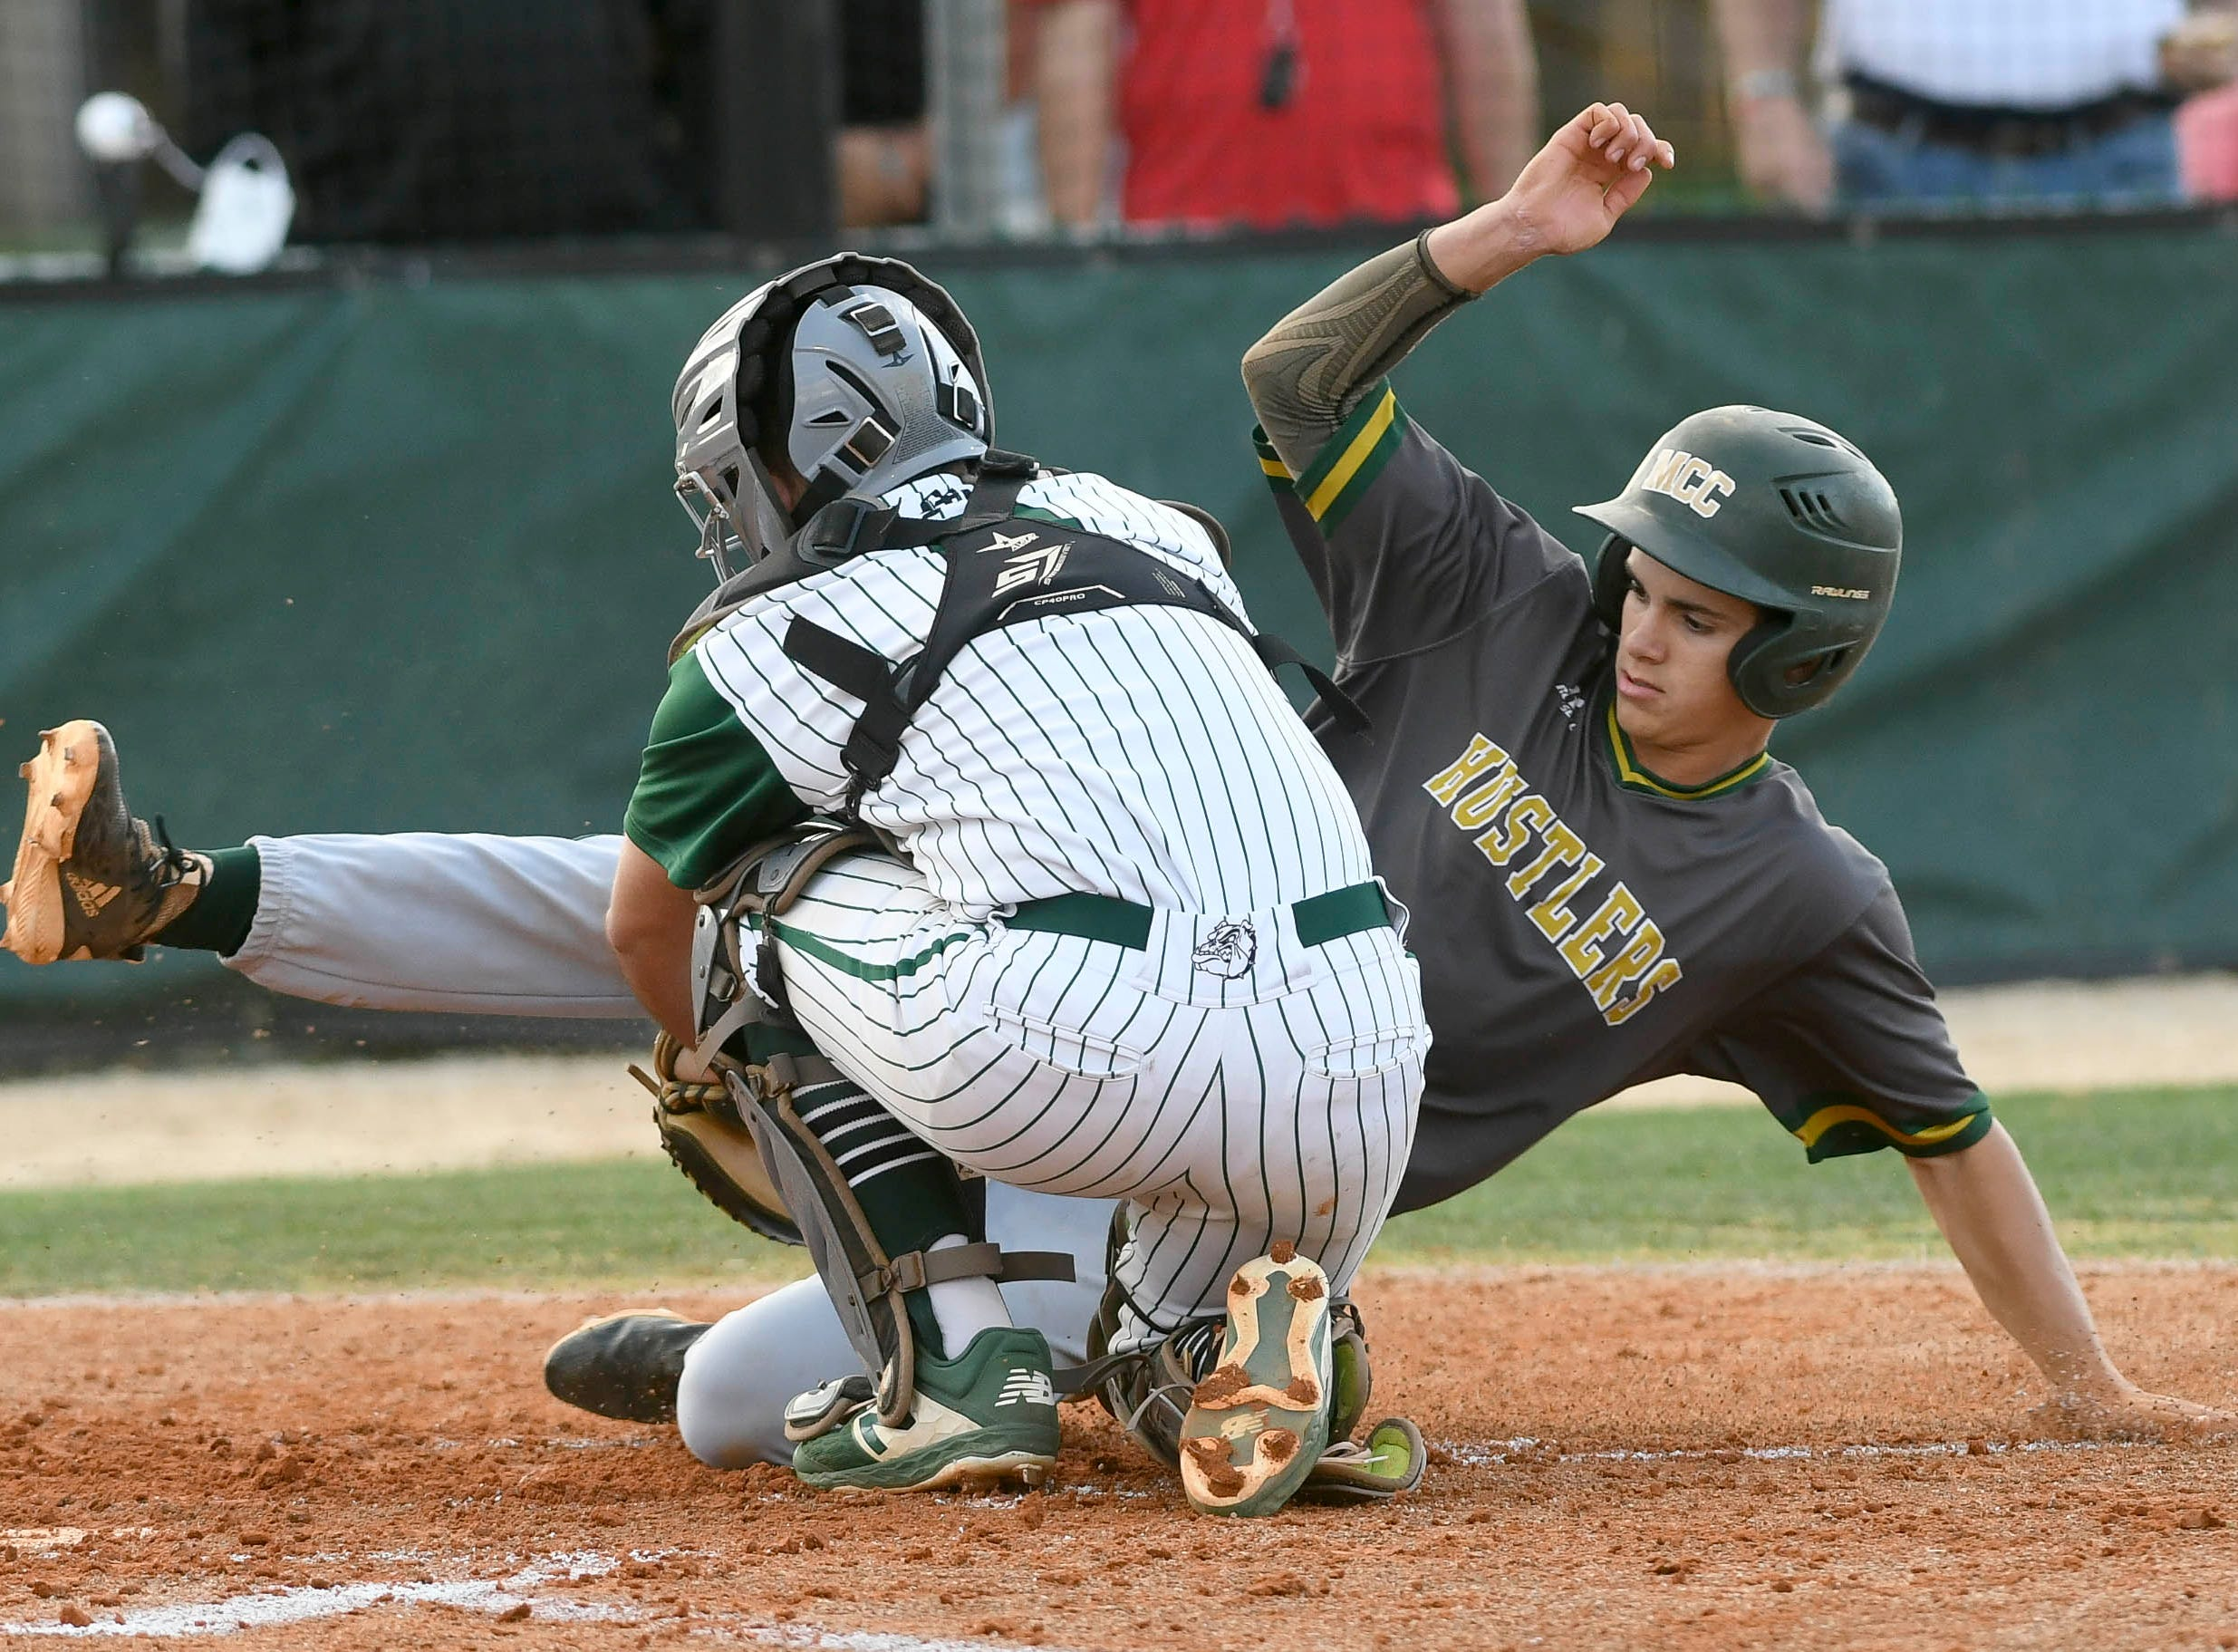 Melbourne catcher Jared Stevanus tags out MCC baserunner Zach Beolet during Wednesday's game at Florida Tech.